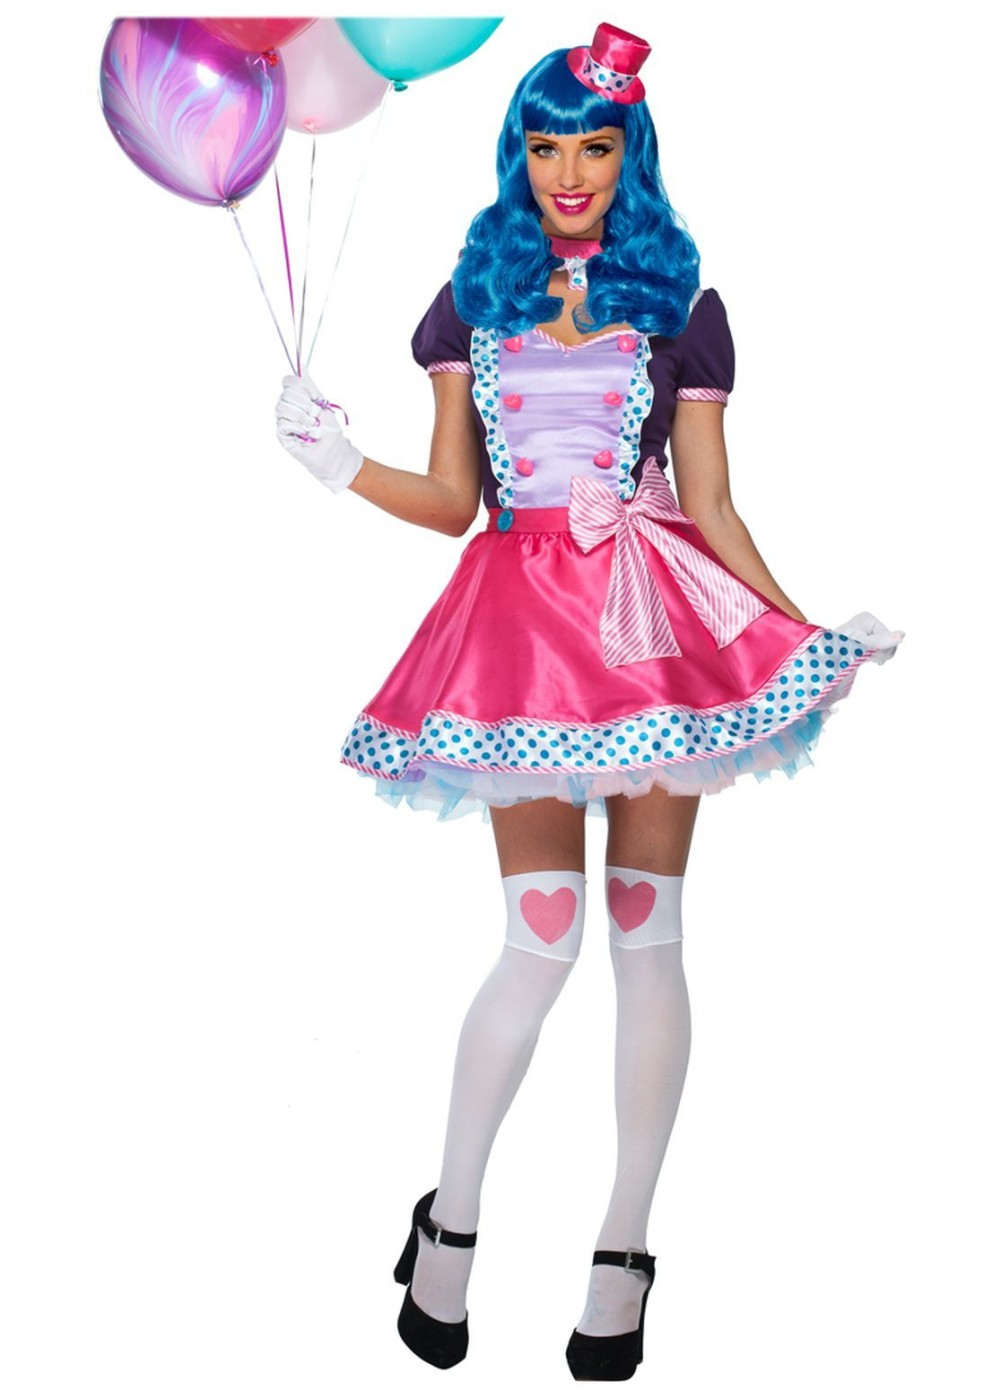 Bubble Gum Clown And Big Wig Women Set Clown Costumes